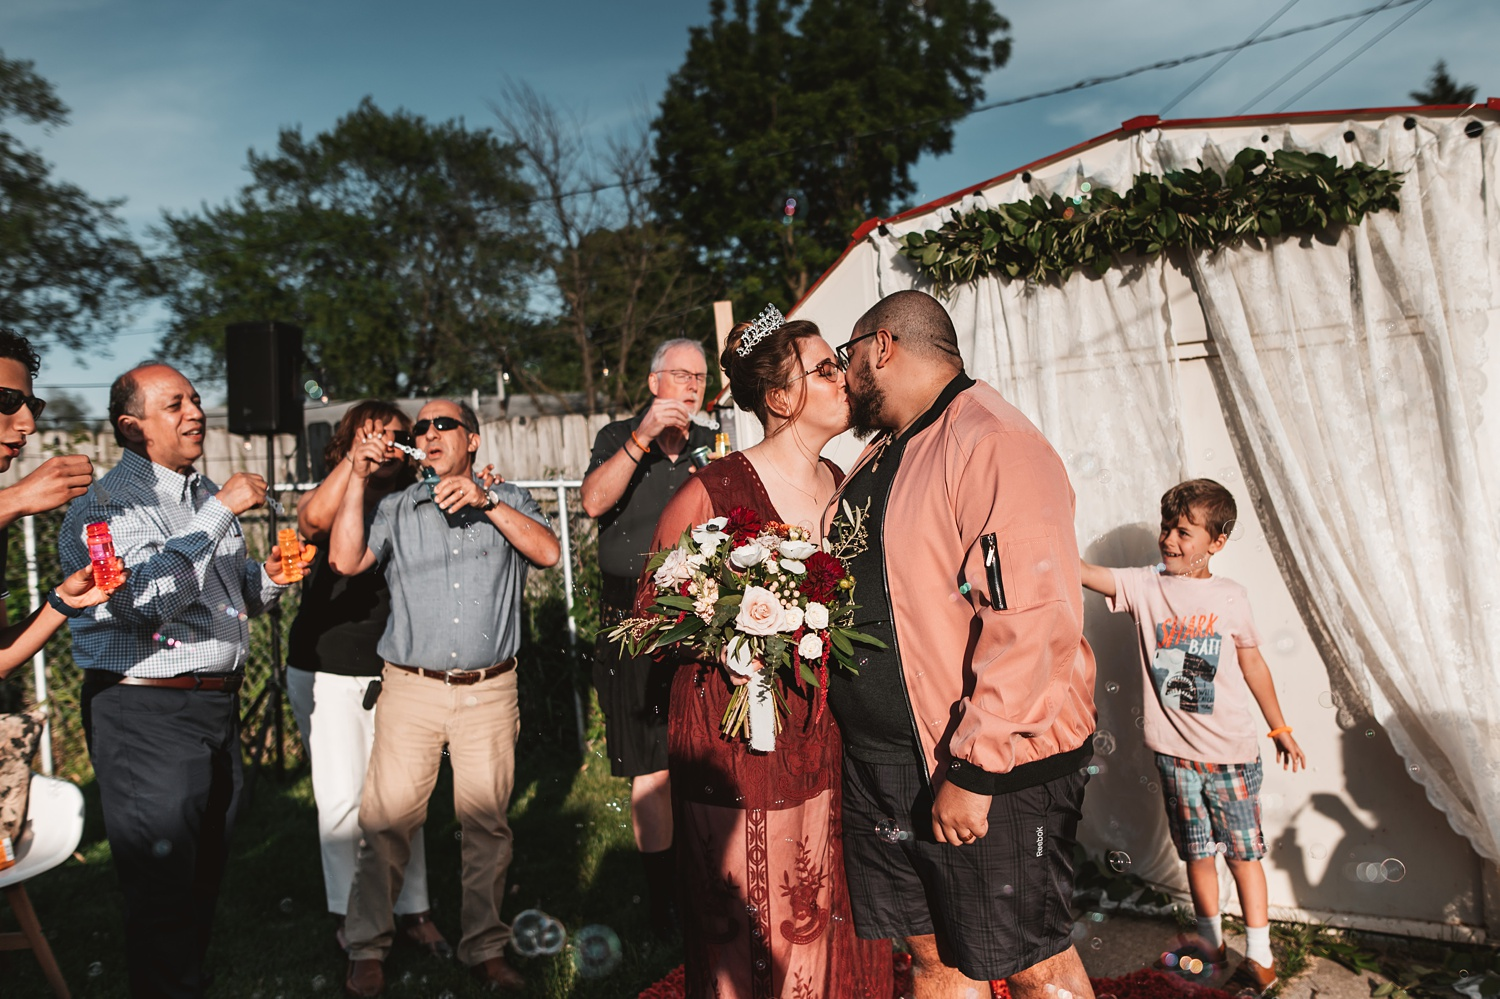 Pandemic Backyard Micro Wedding - The Adamkovi chicago ceremony first kiss bubbles